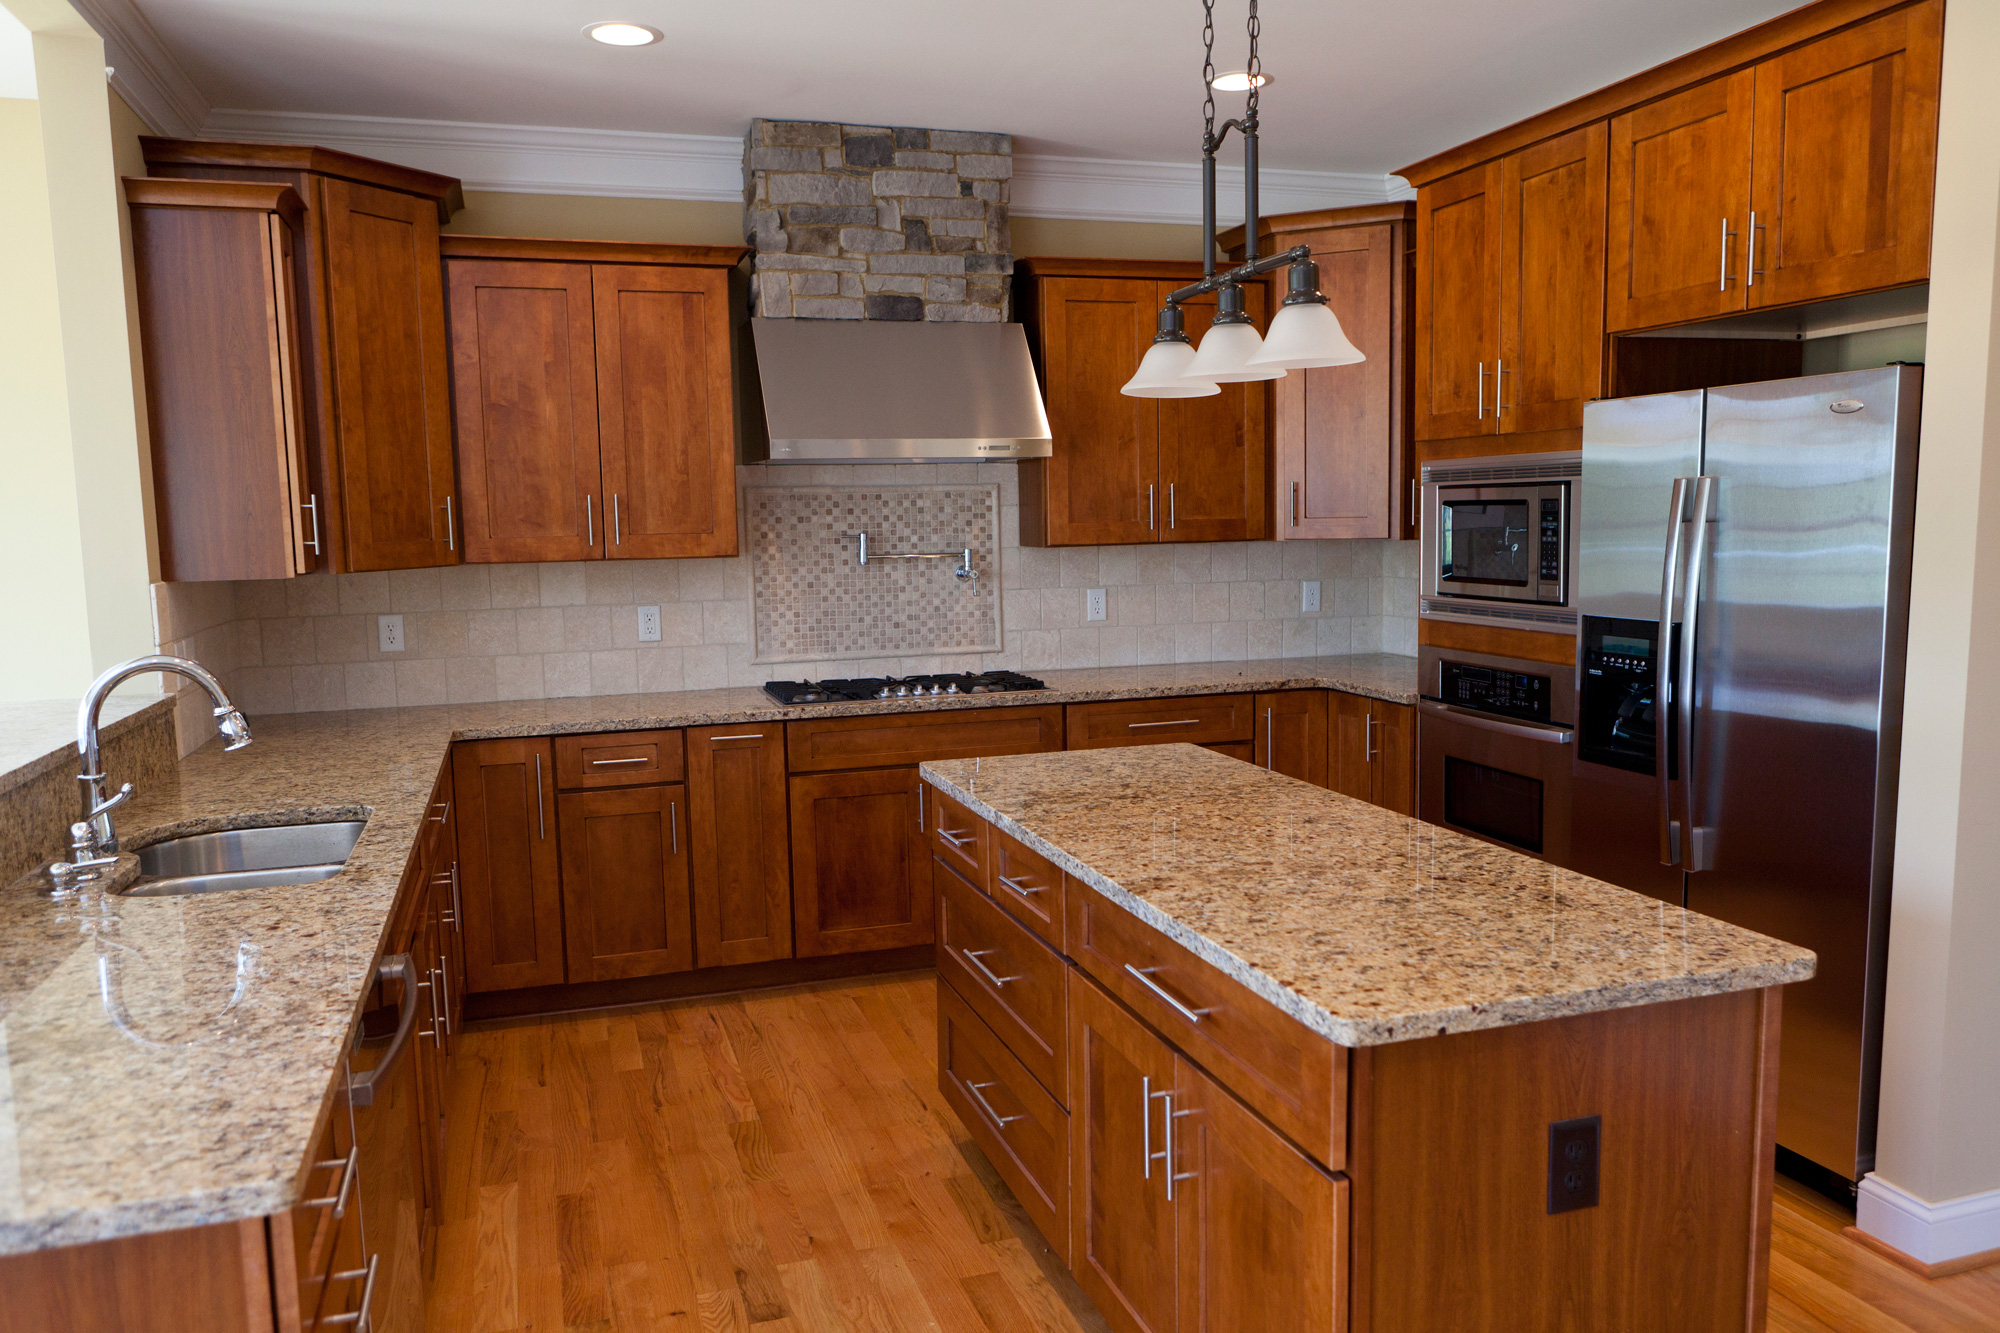 Http Amcordesign Us Kitchen Remodel Design Kitchen Remodels Kitchen Remodeling Contractor San Html